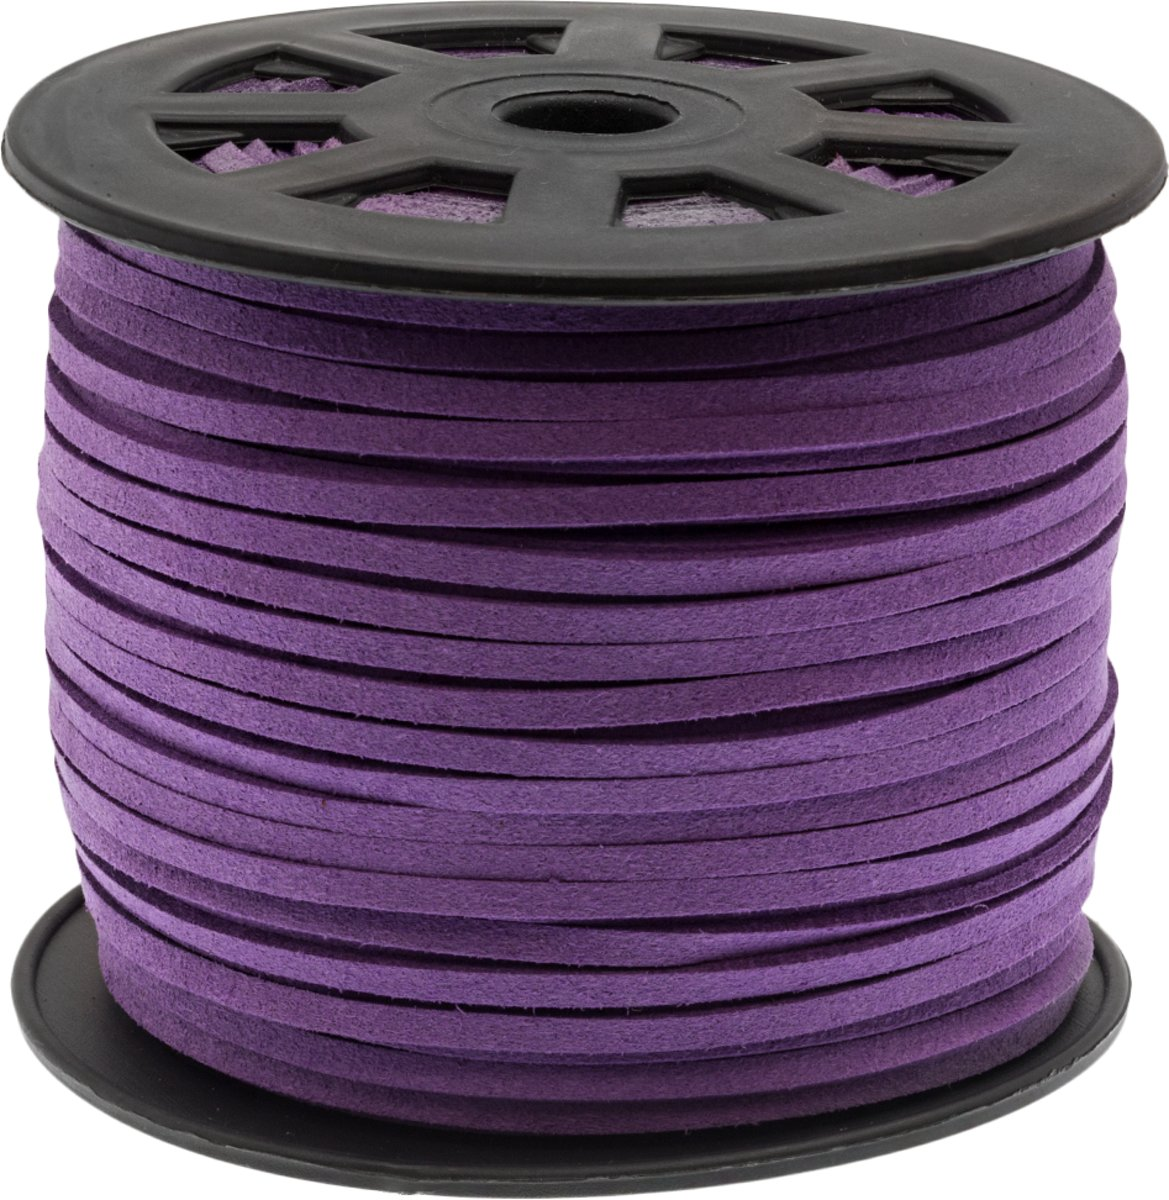 Faux Suede Veter (3 mm) Wisteria Purple (91 Meter)